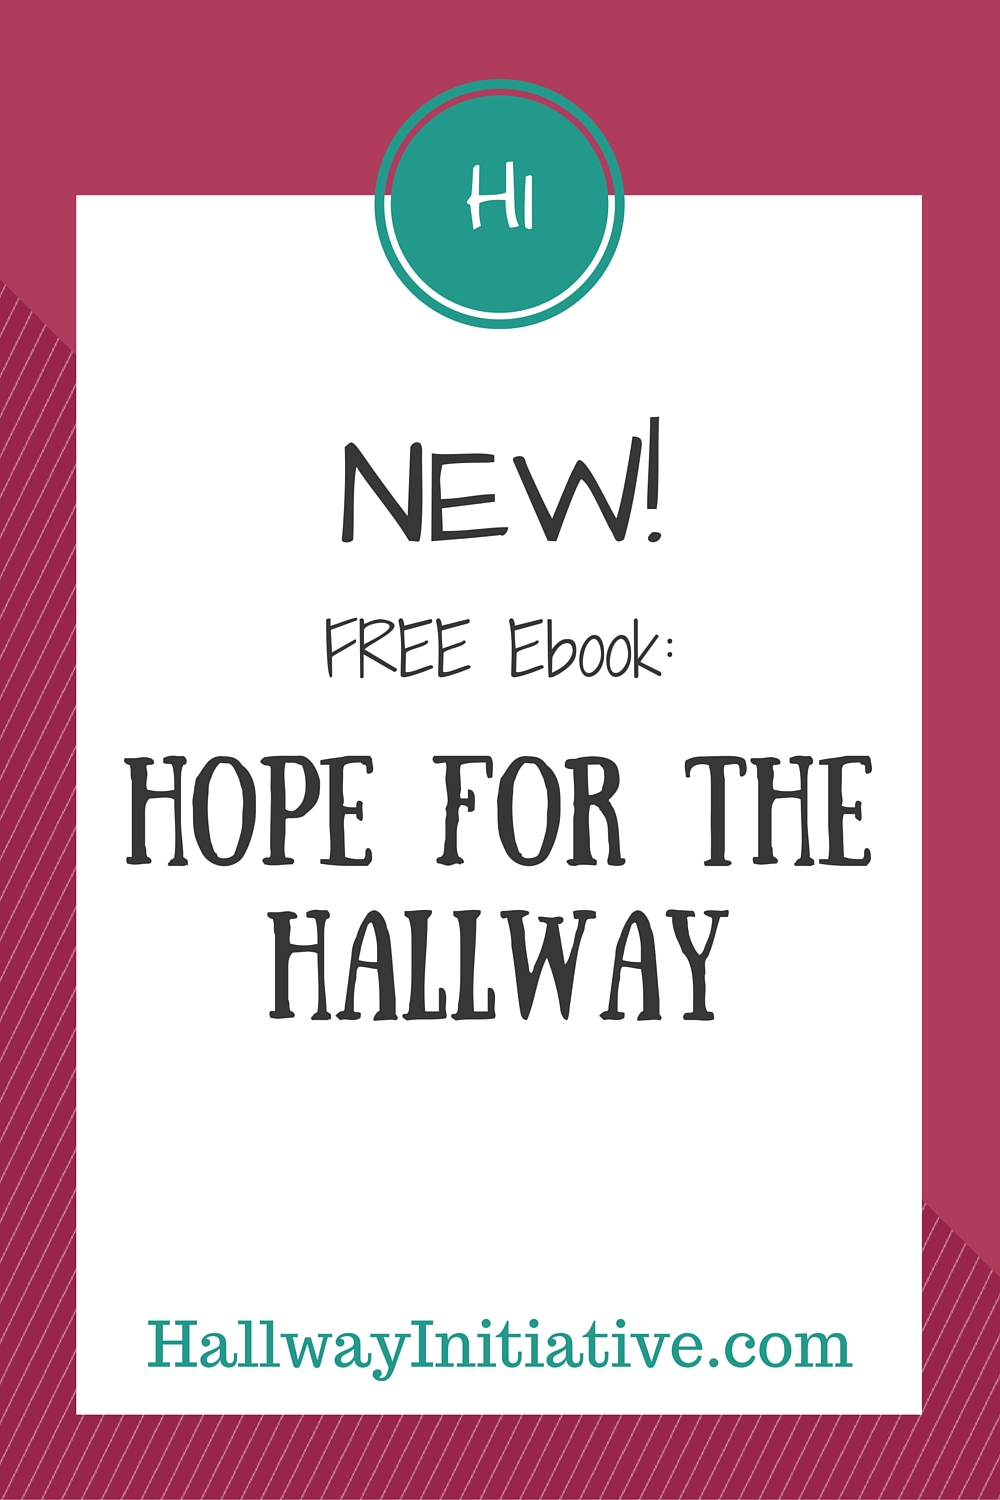 NEW! Free ebook: Hope for the Hallway